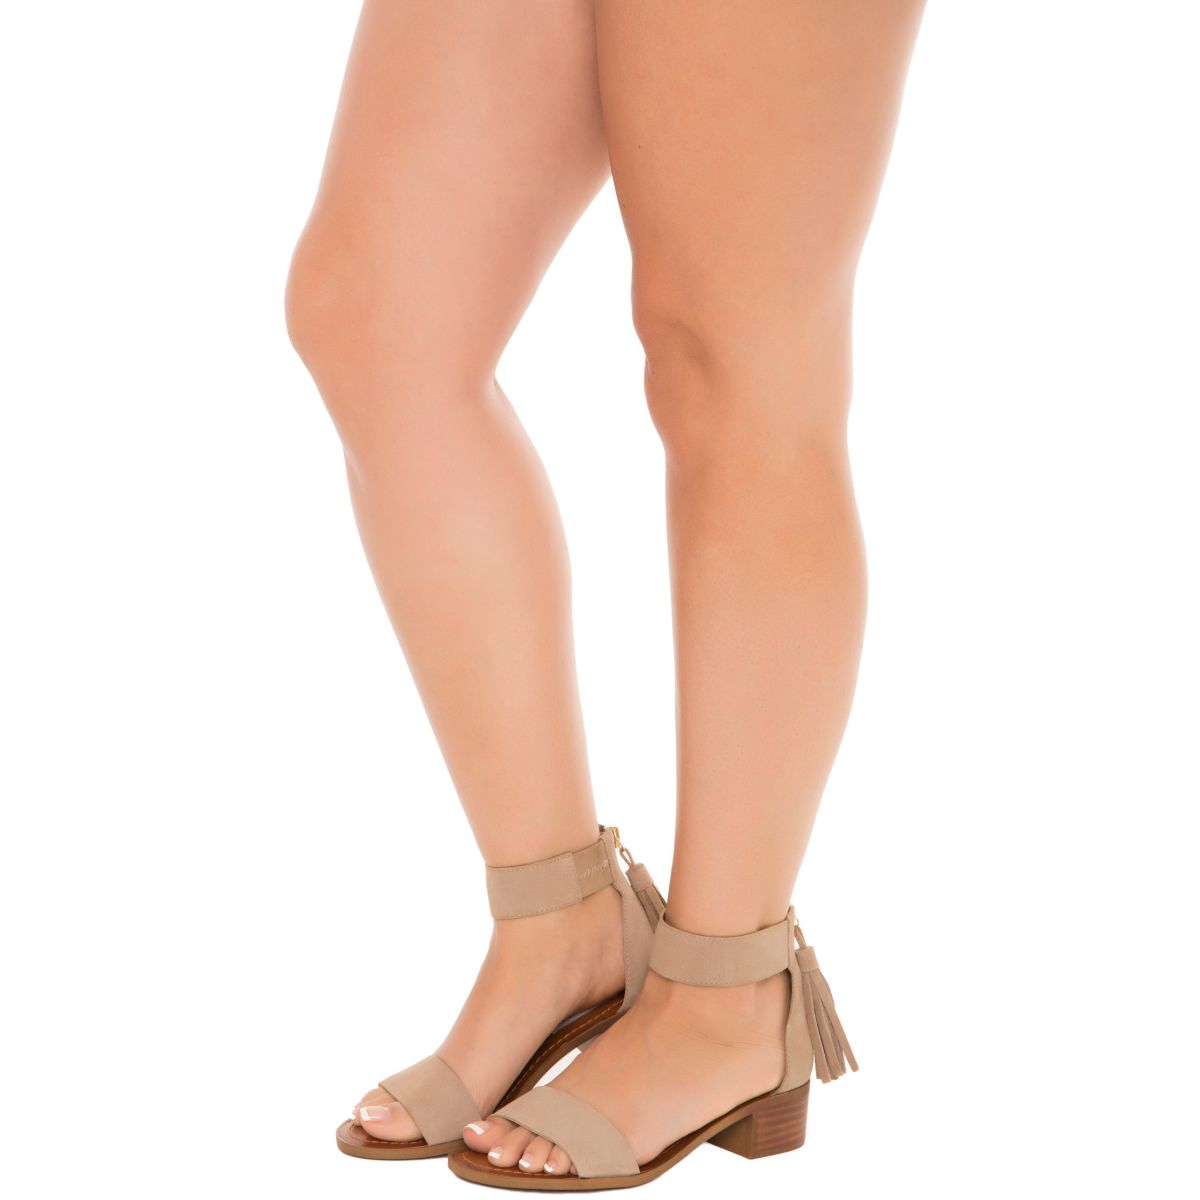 b3b953fcd Steve Madden for Women: Darcie Taupe Heels